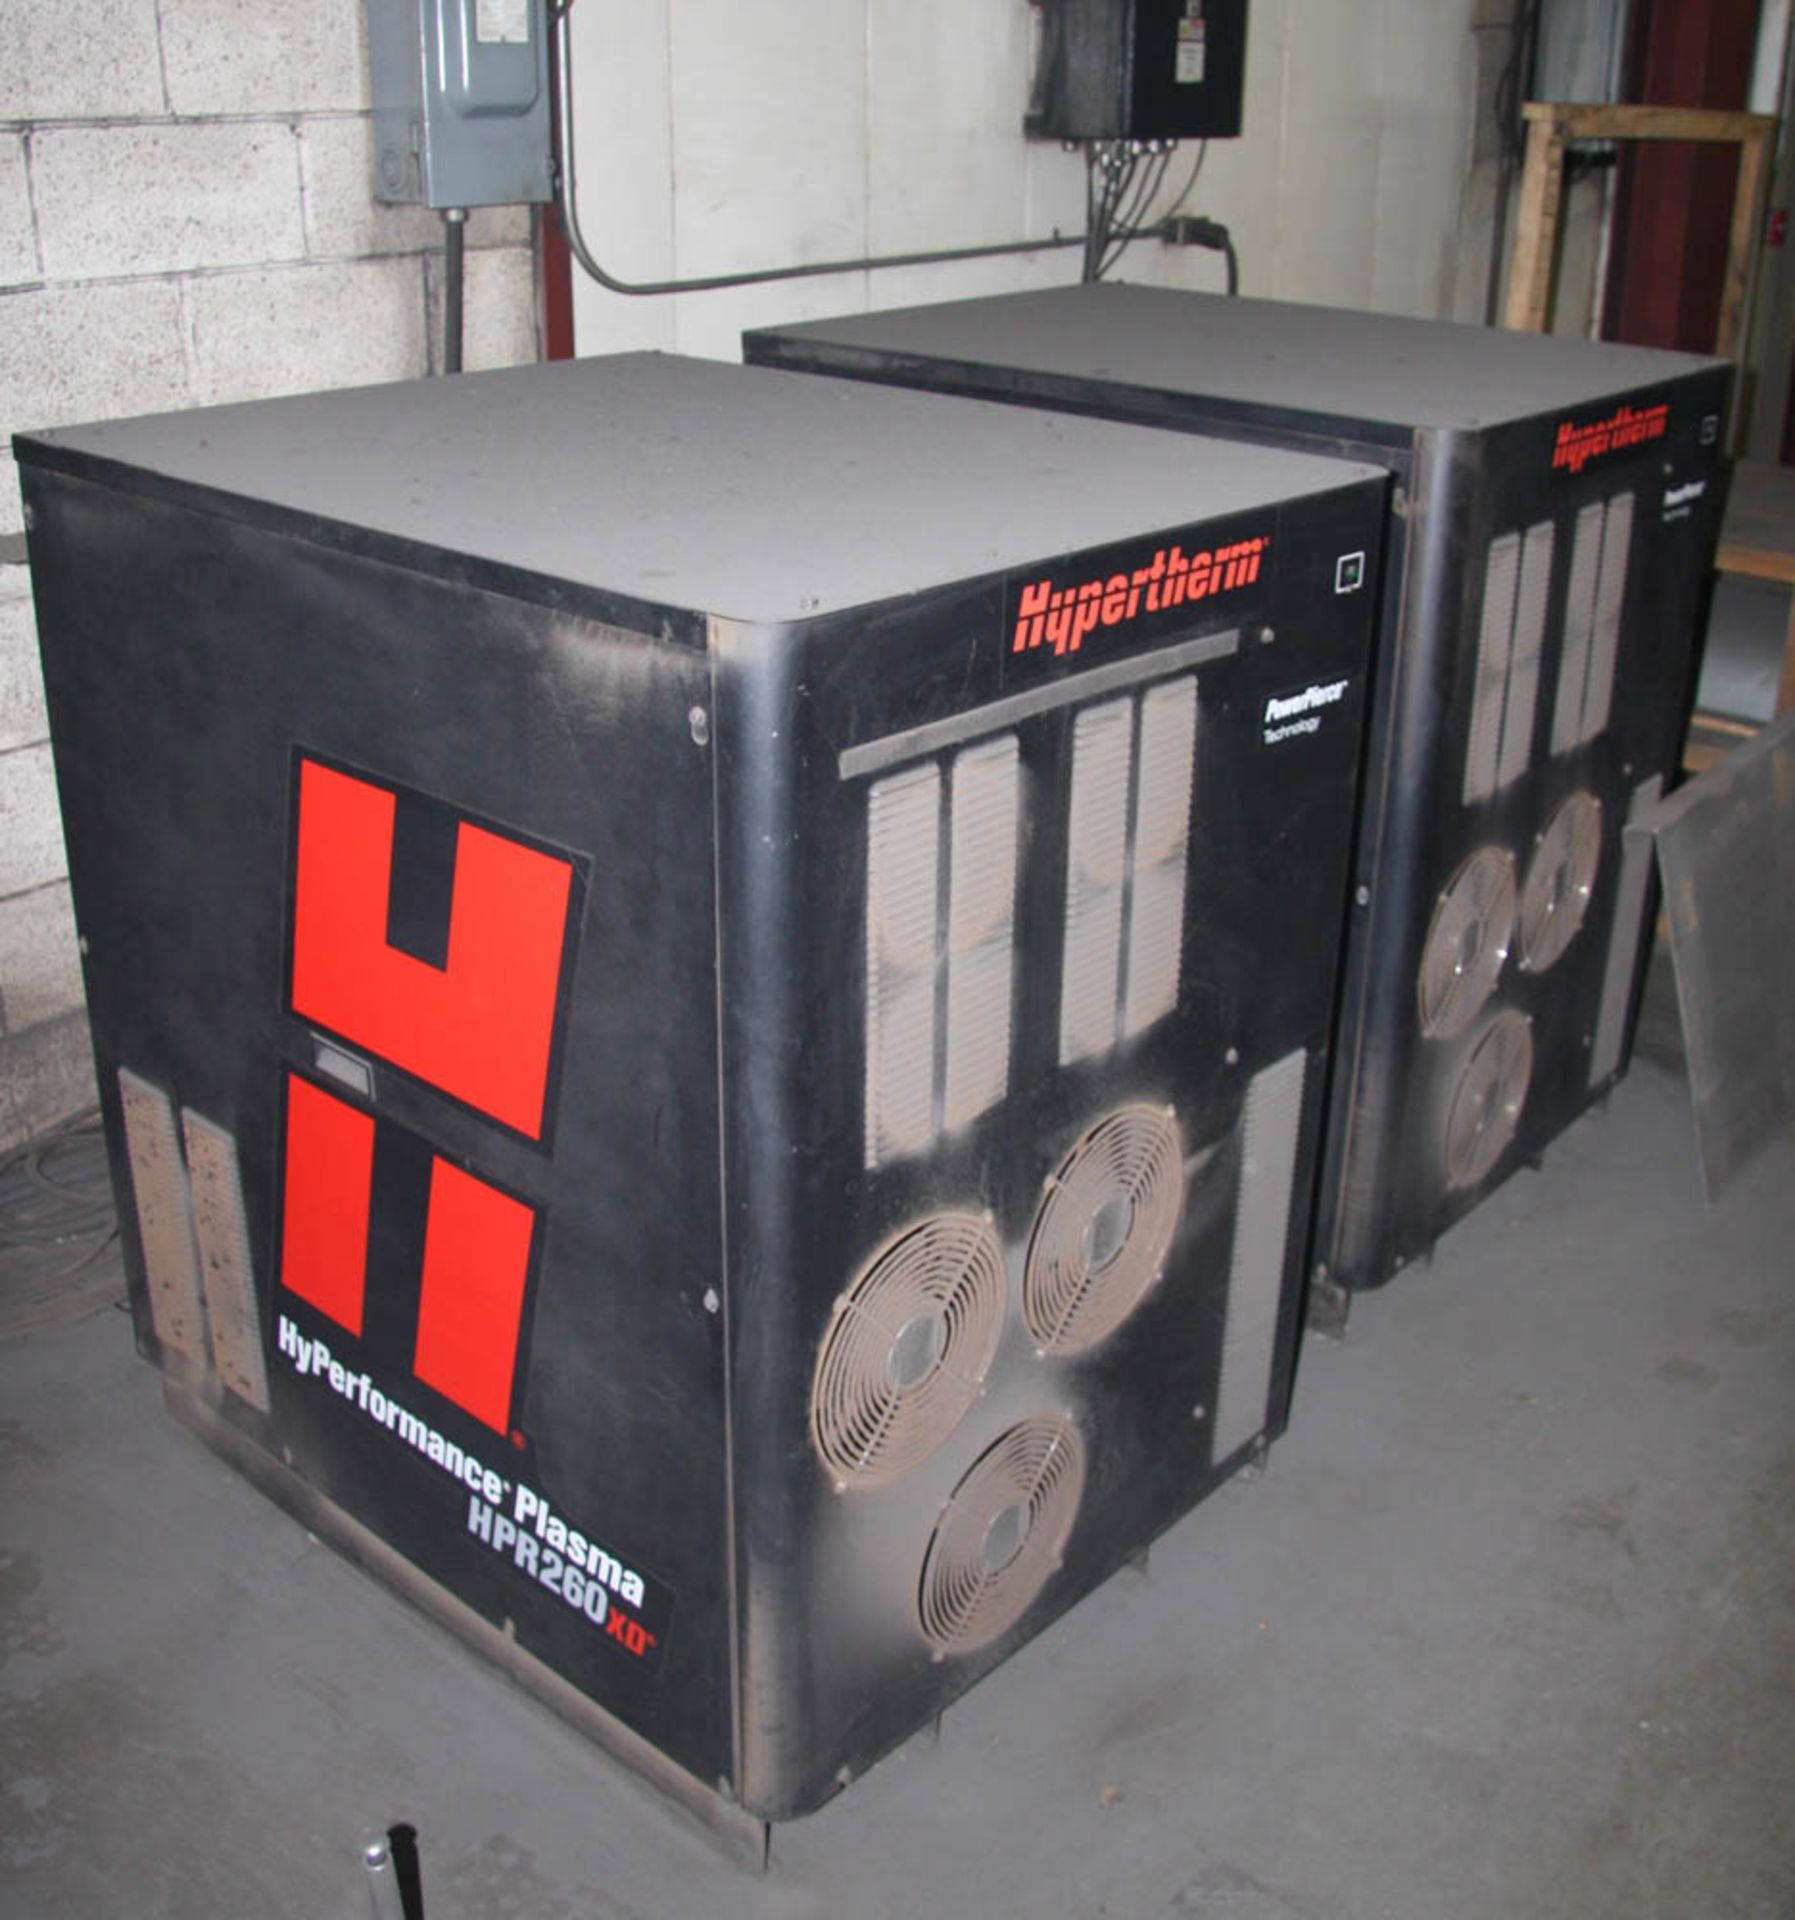 """2015 MESSER MDL. MMEXCEL HI-DEF CNC PLASMA CUTTING TABLE, [2] HEADS, 140"""" X 324"""" OVERALL TABLE SIZE, - Image 12 of 20"""